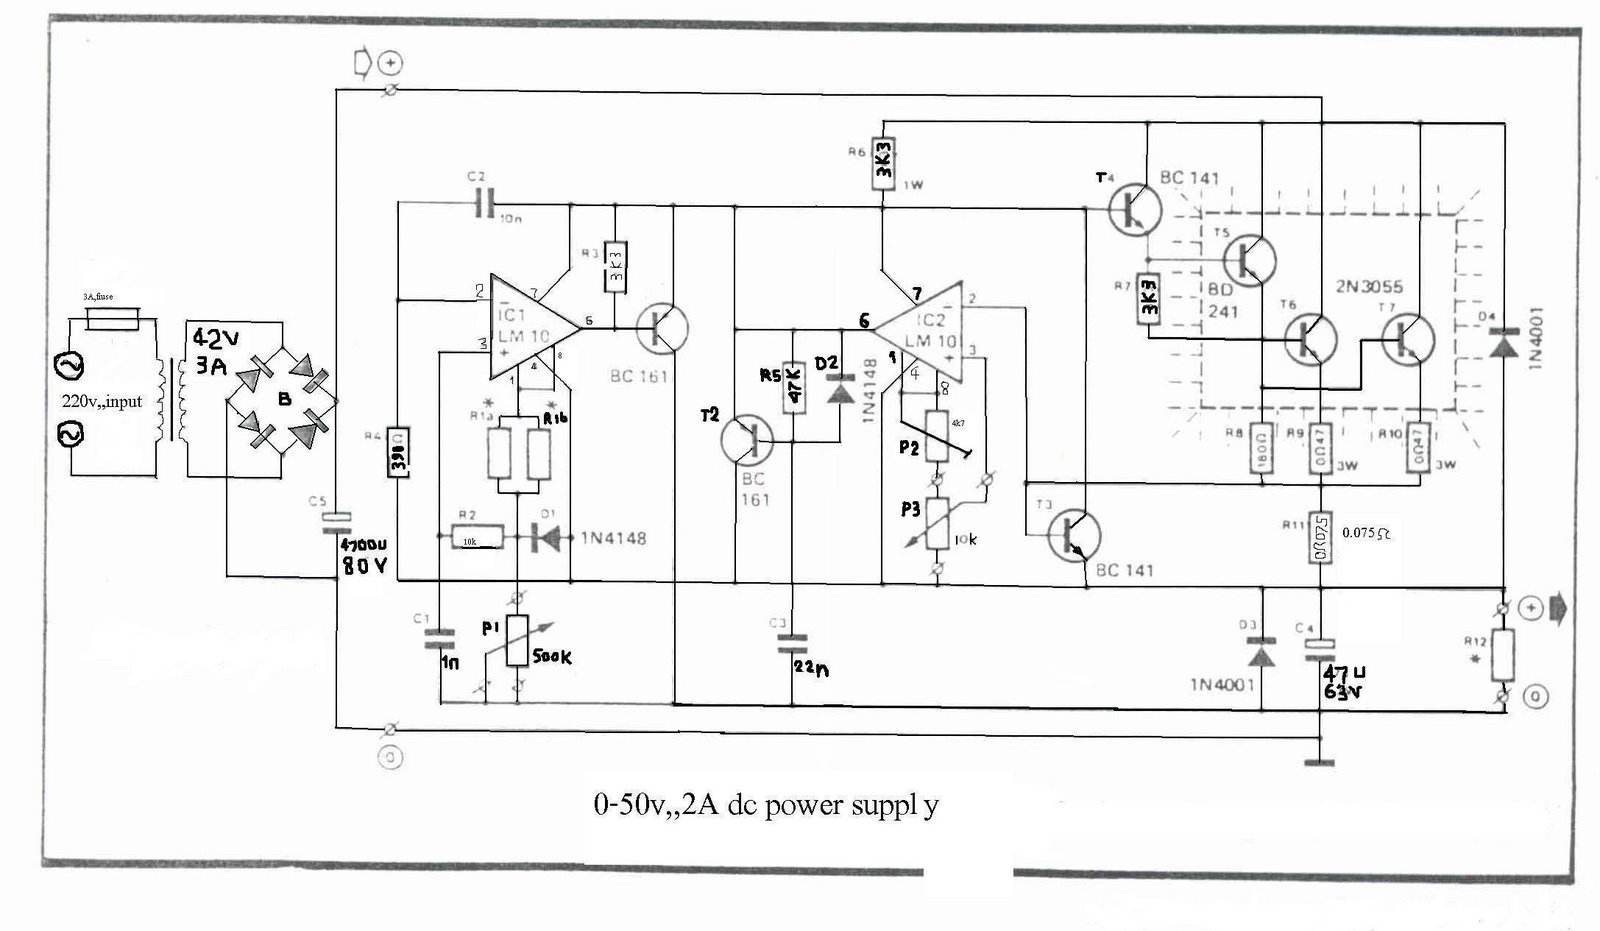 24vdc Power Supply Circuit Diagram Pdf Detailed Schematics Lab Schematic Electrical Wiring Diagrams 0 50v 2a Bench Tehnik Service